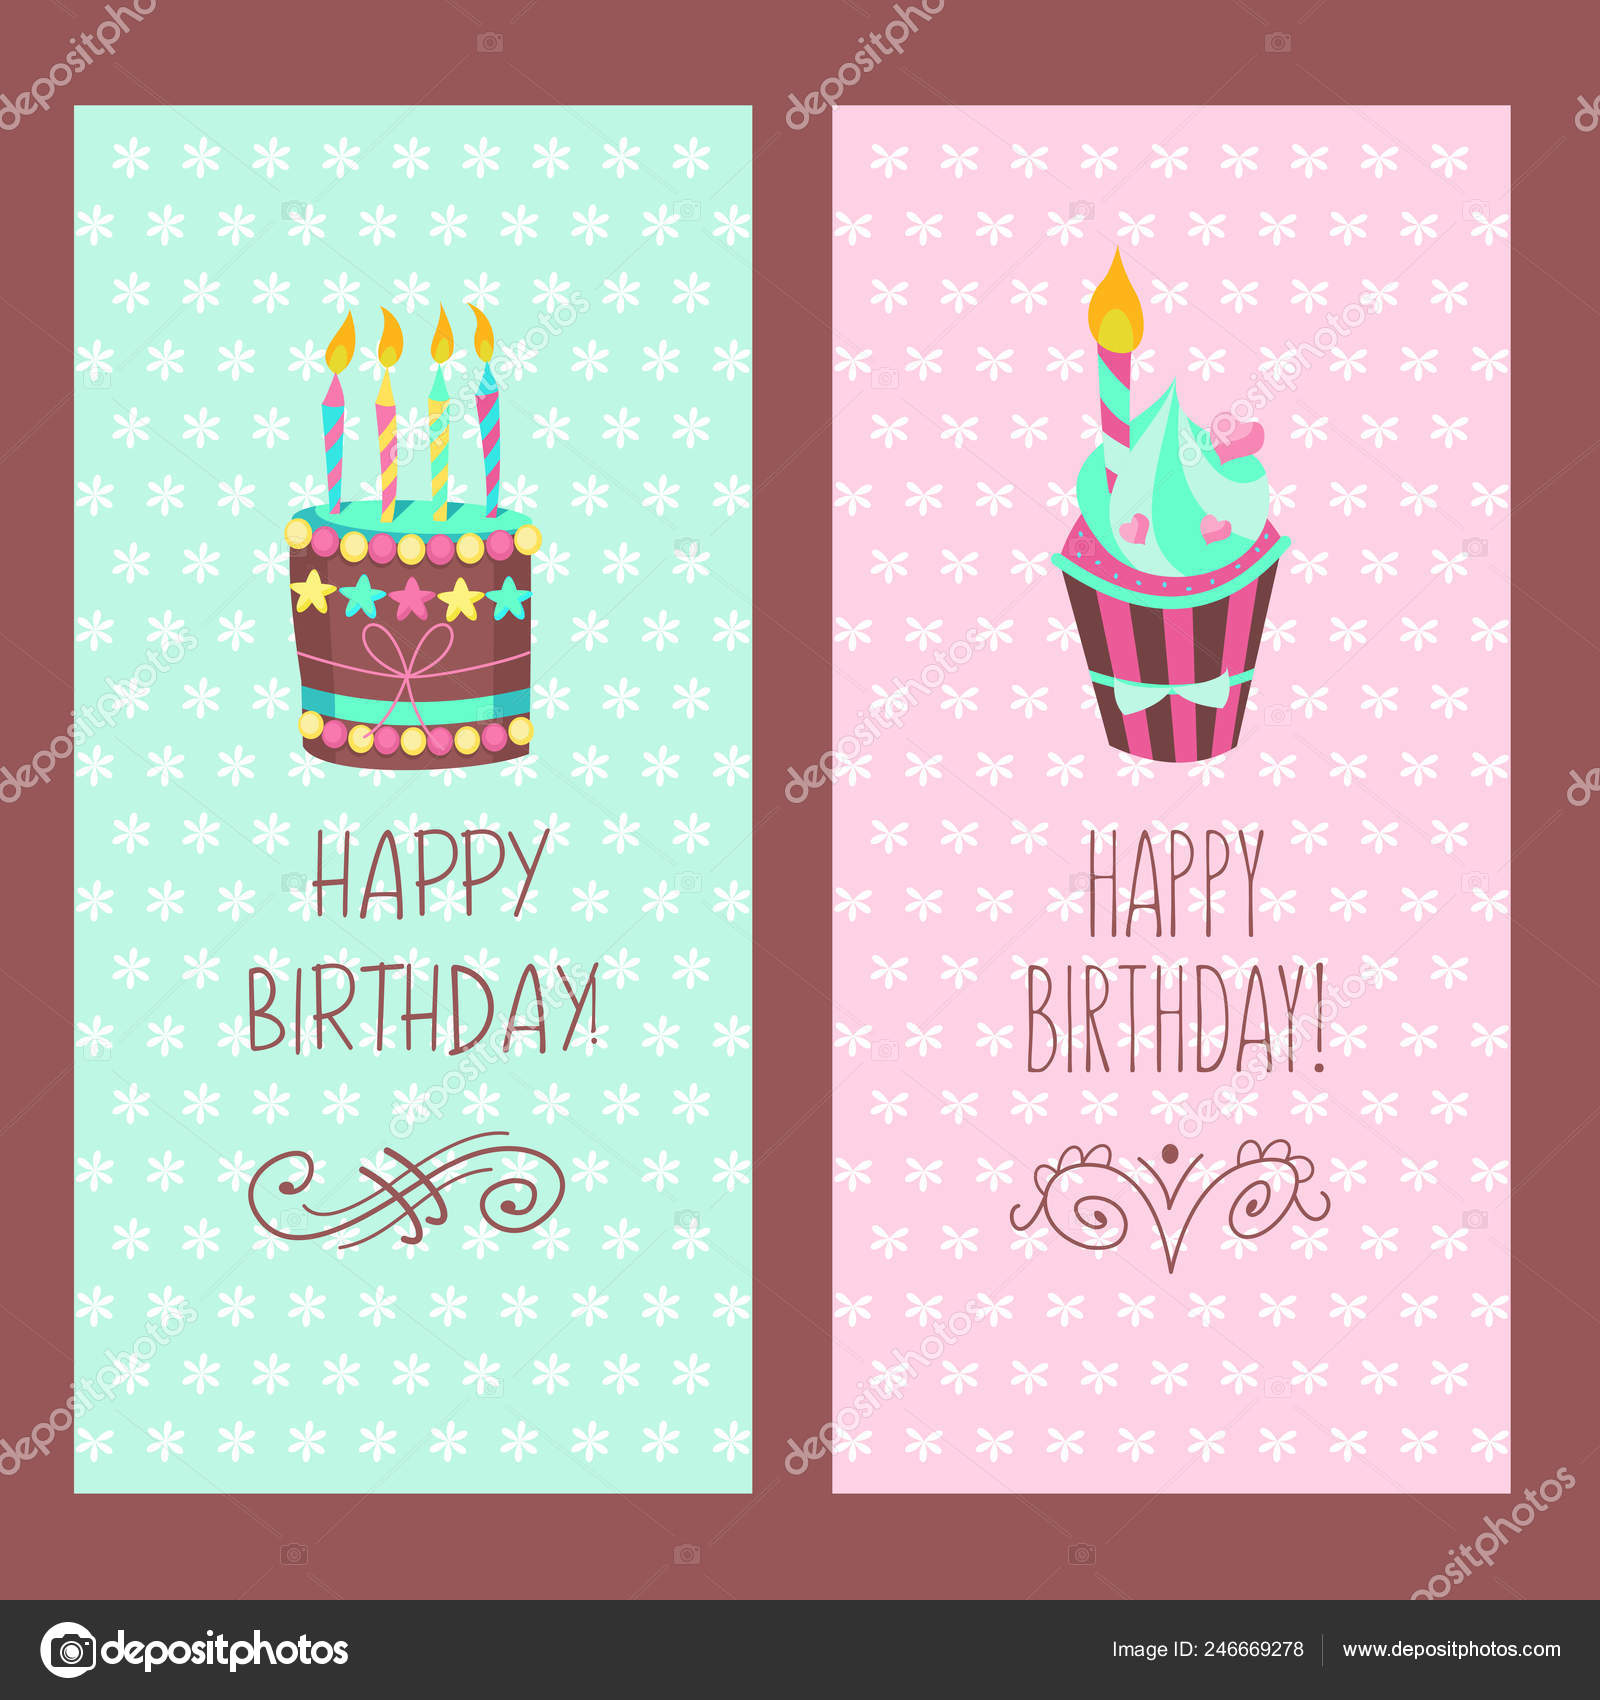 Congratulations On Your Birthday Beautiful Cute Cakes And Candlelight Hand Drawn Frames Vector Illustration